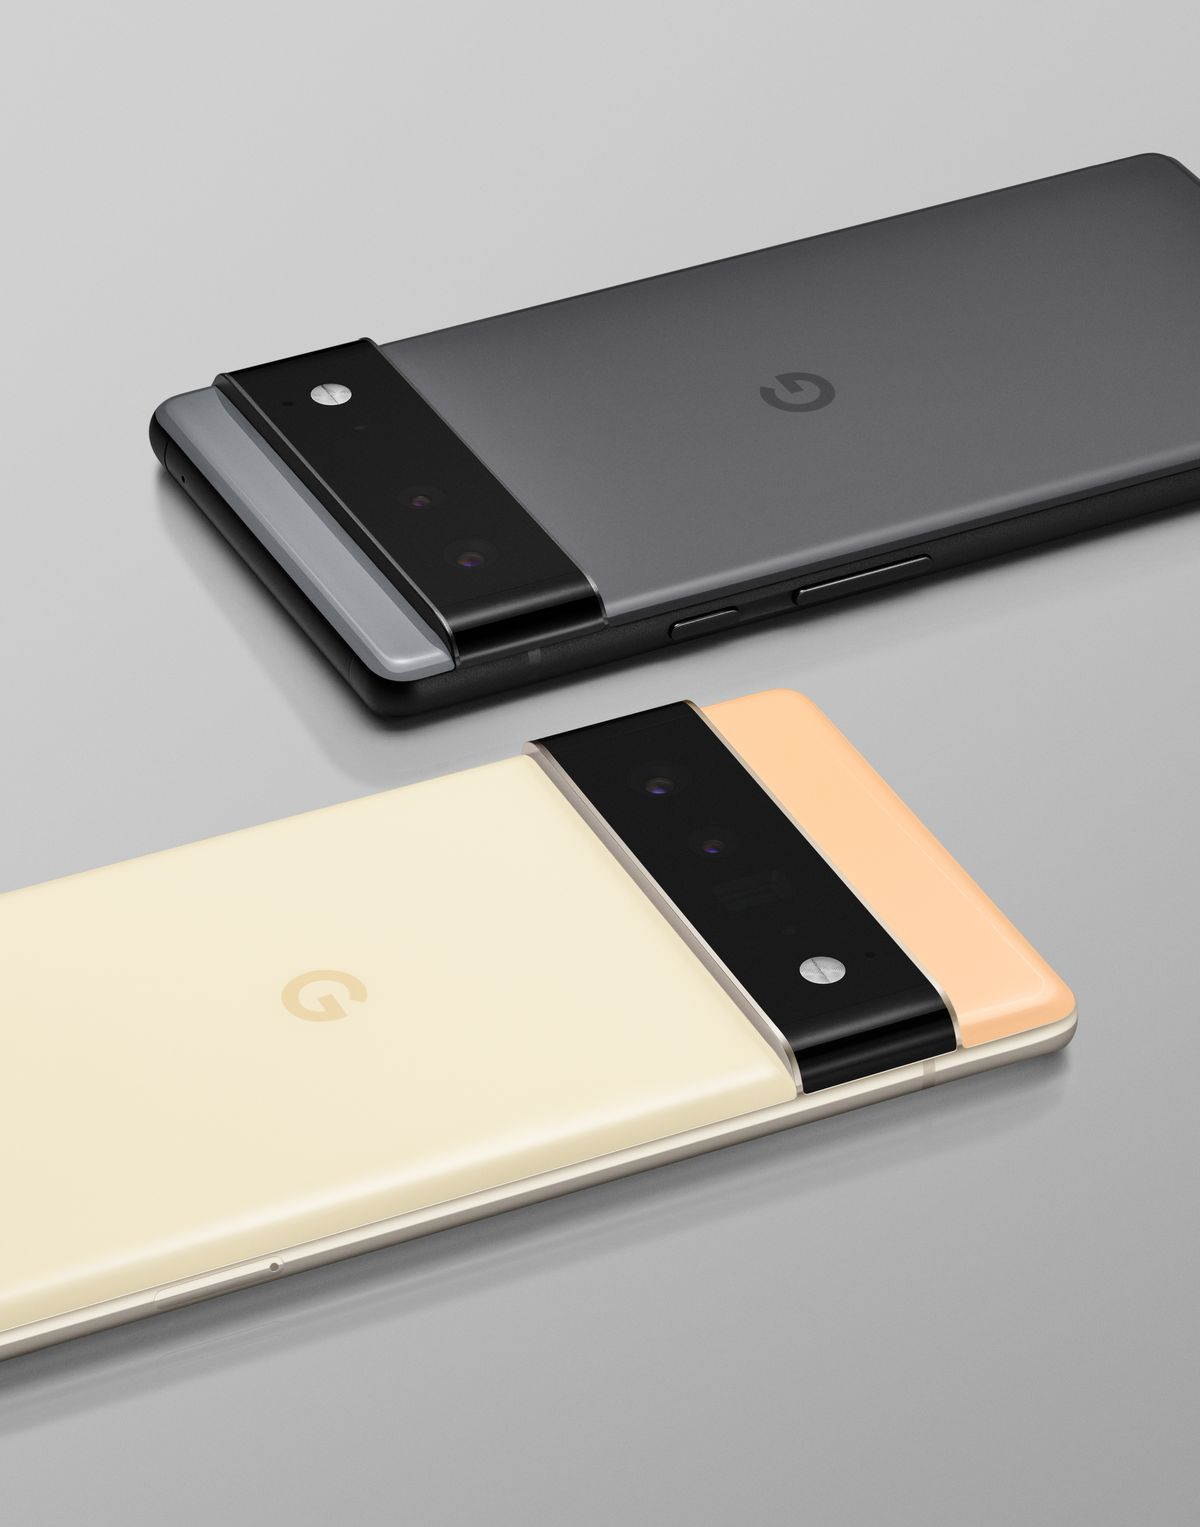 The Google Pixel 6 (top) and Pixel 6 Pro (bottom)